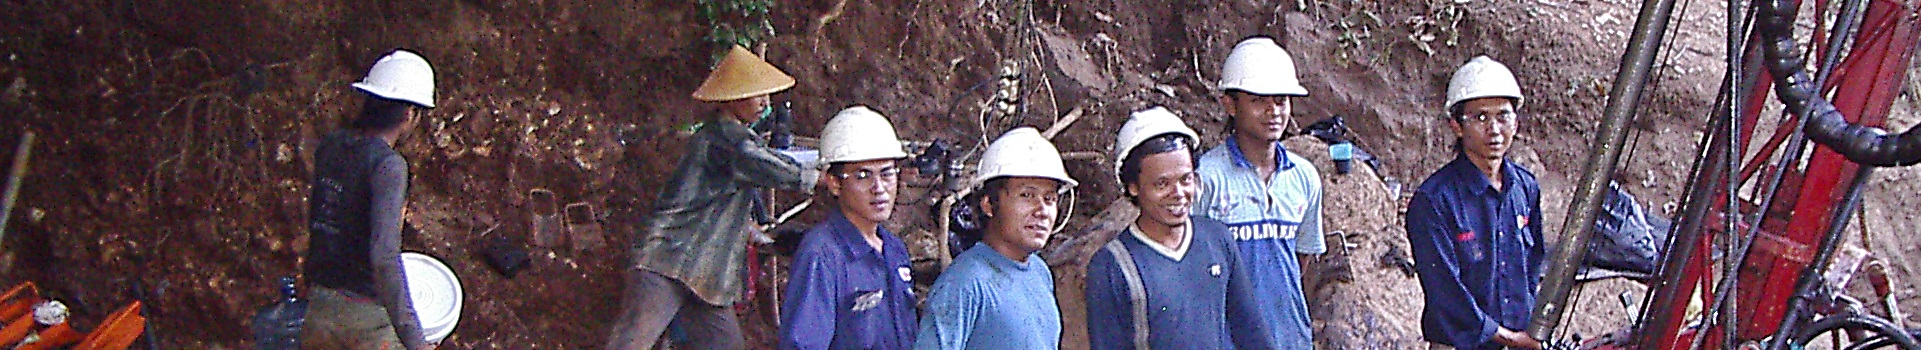 Drilling Tujuh Bukit - Pages